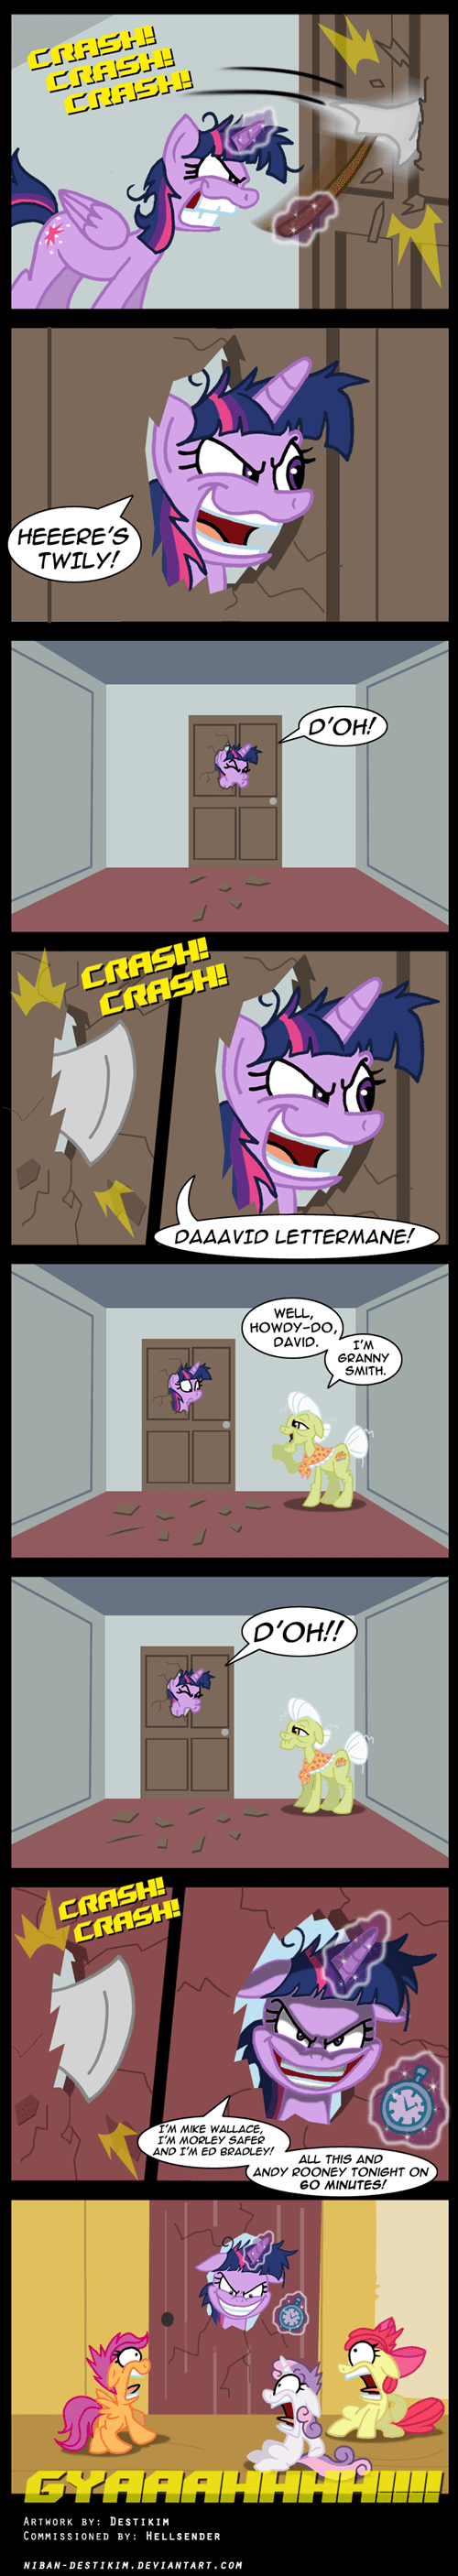 the shining,the simpsons,twilight sparkle